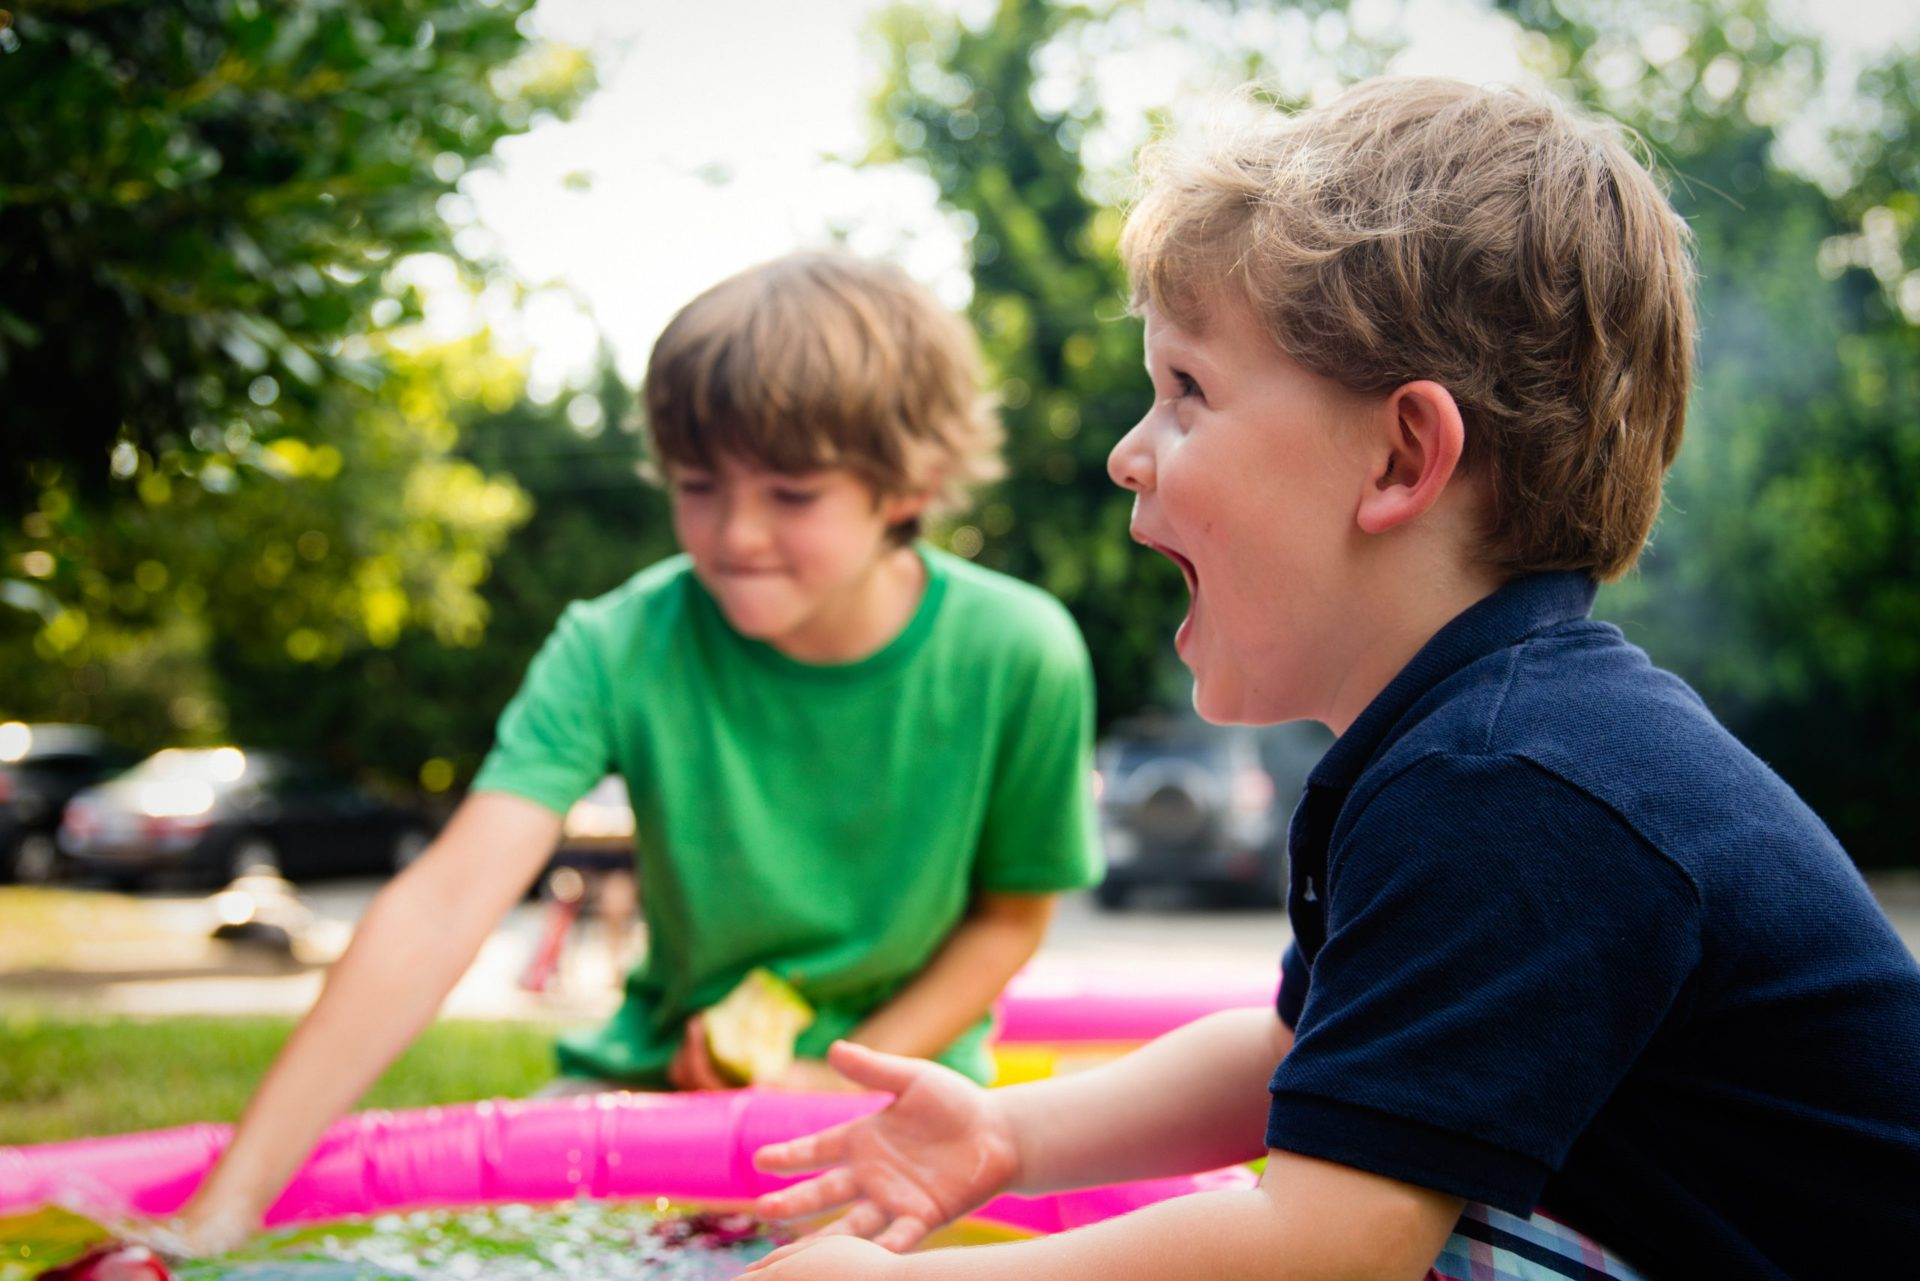 How to Develop Holiday Routines With Your Children The Montessori Way